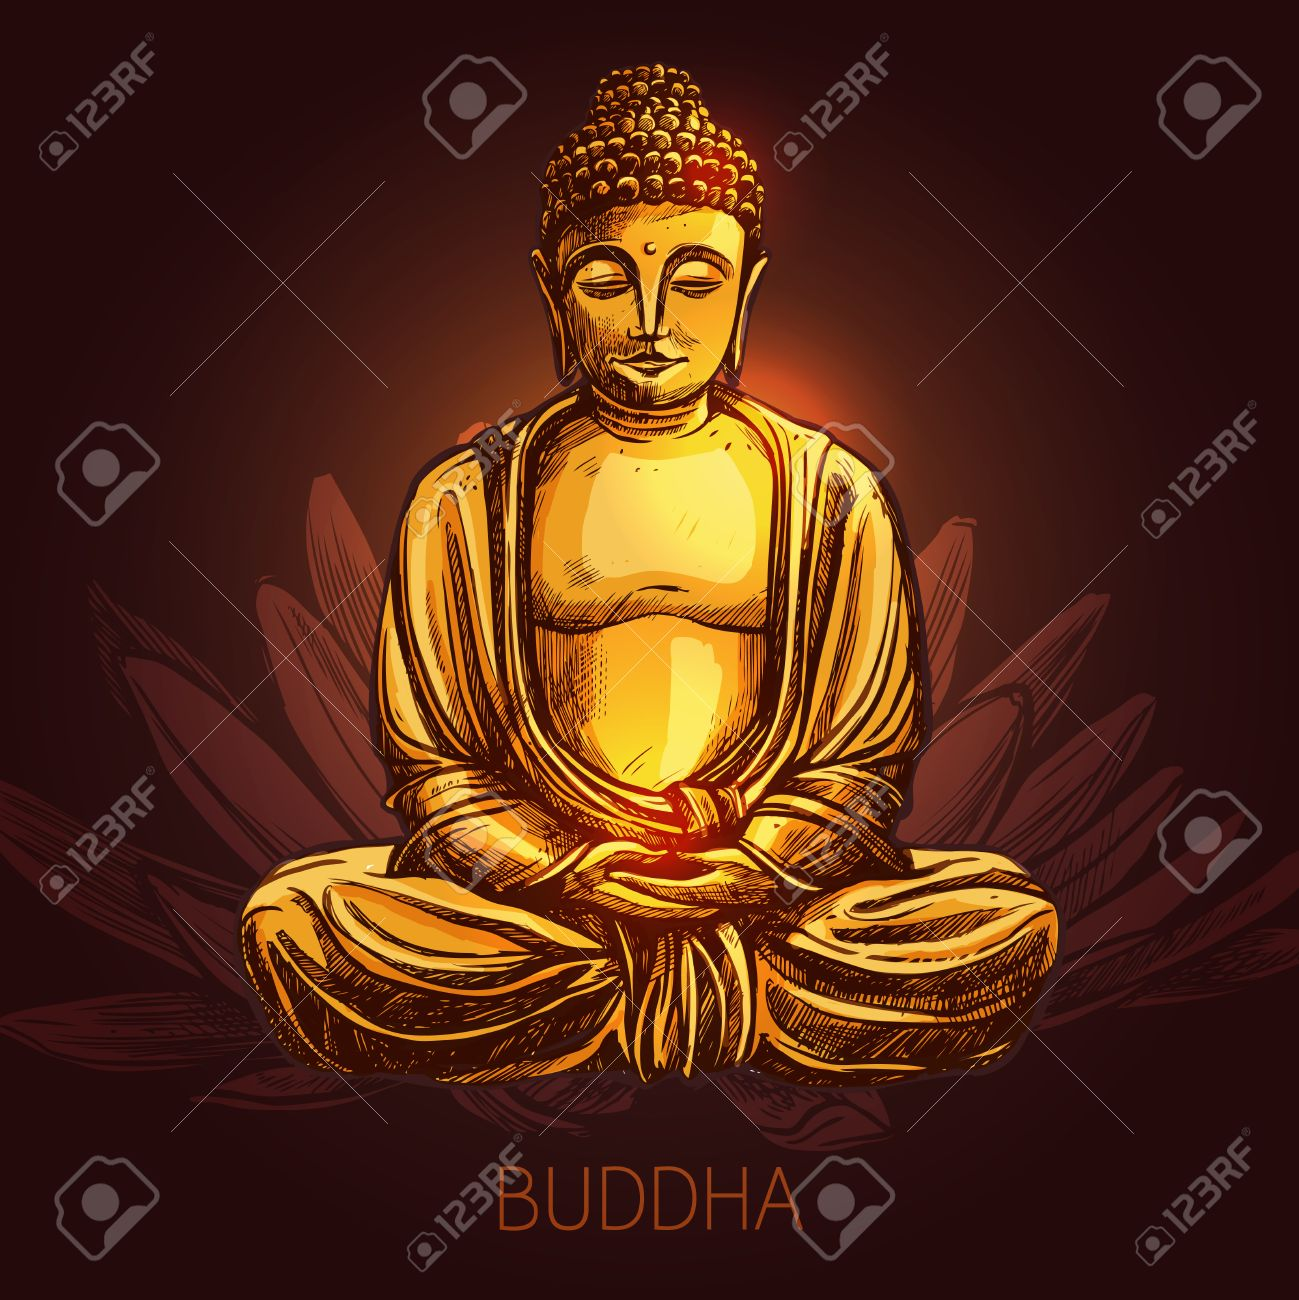 Buddha God Sitting In Lotus Position On Flower Sketch Vector